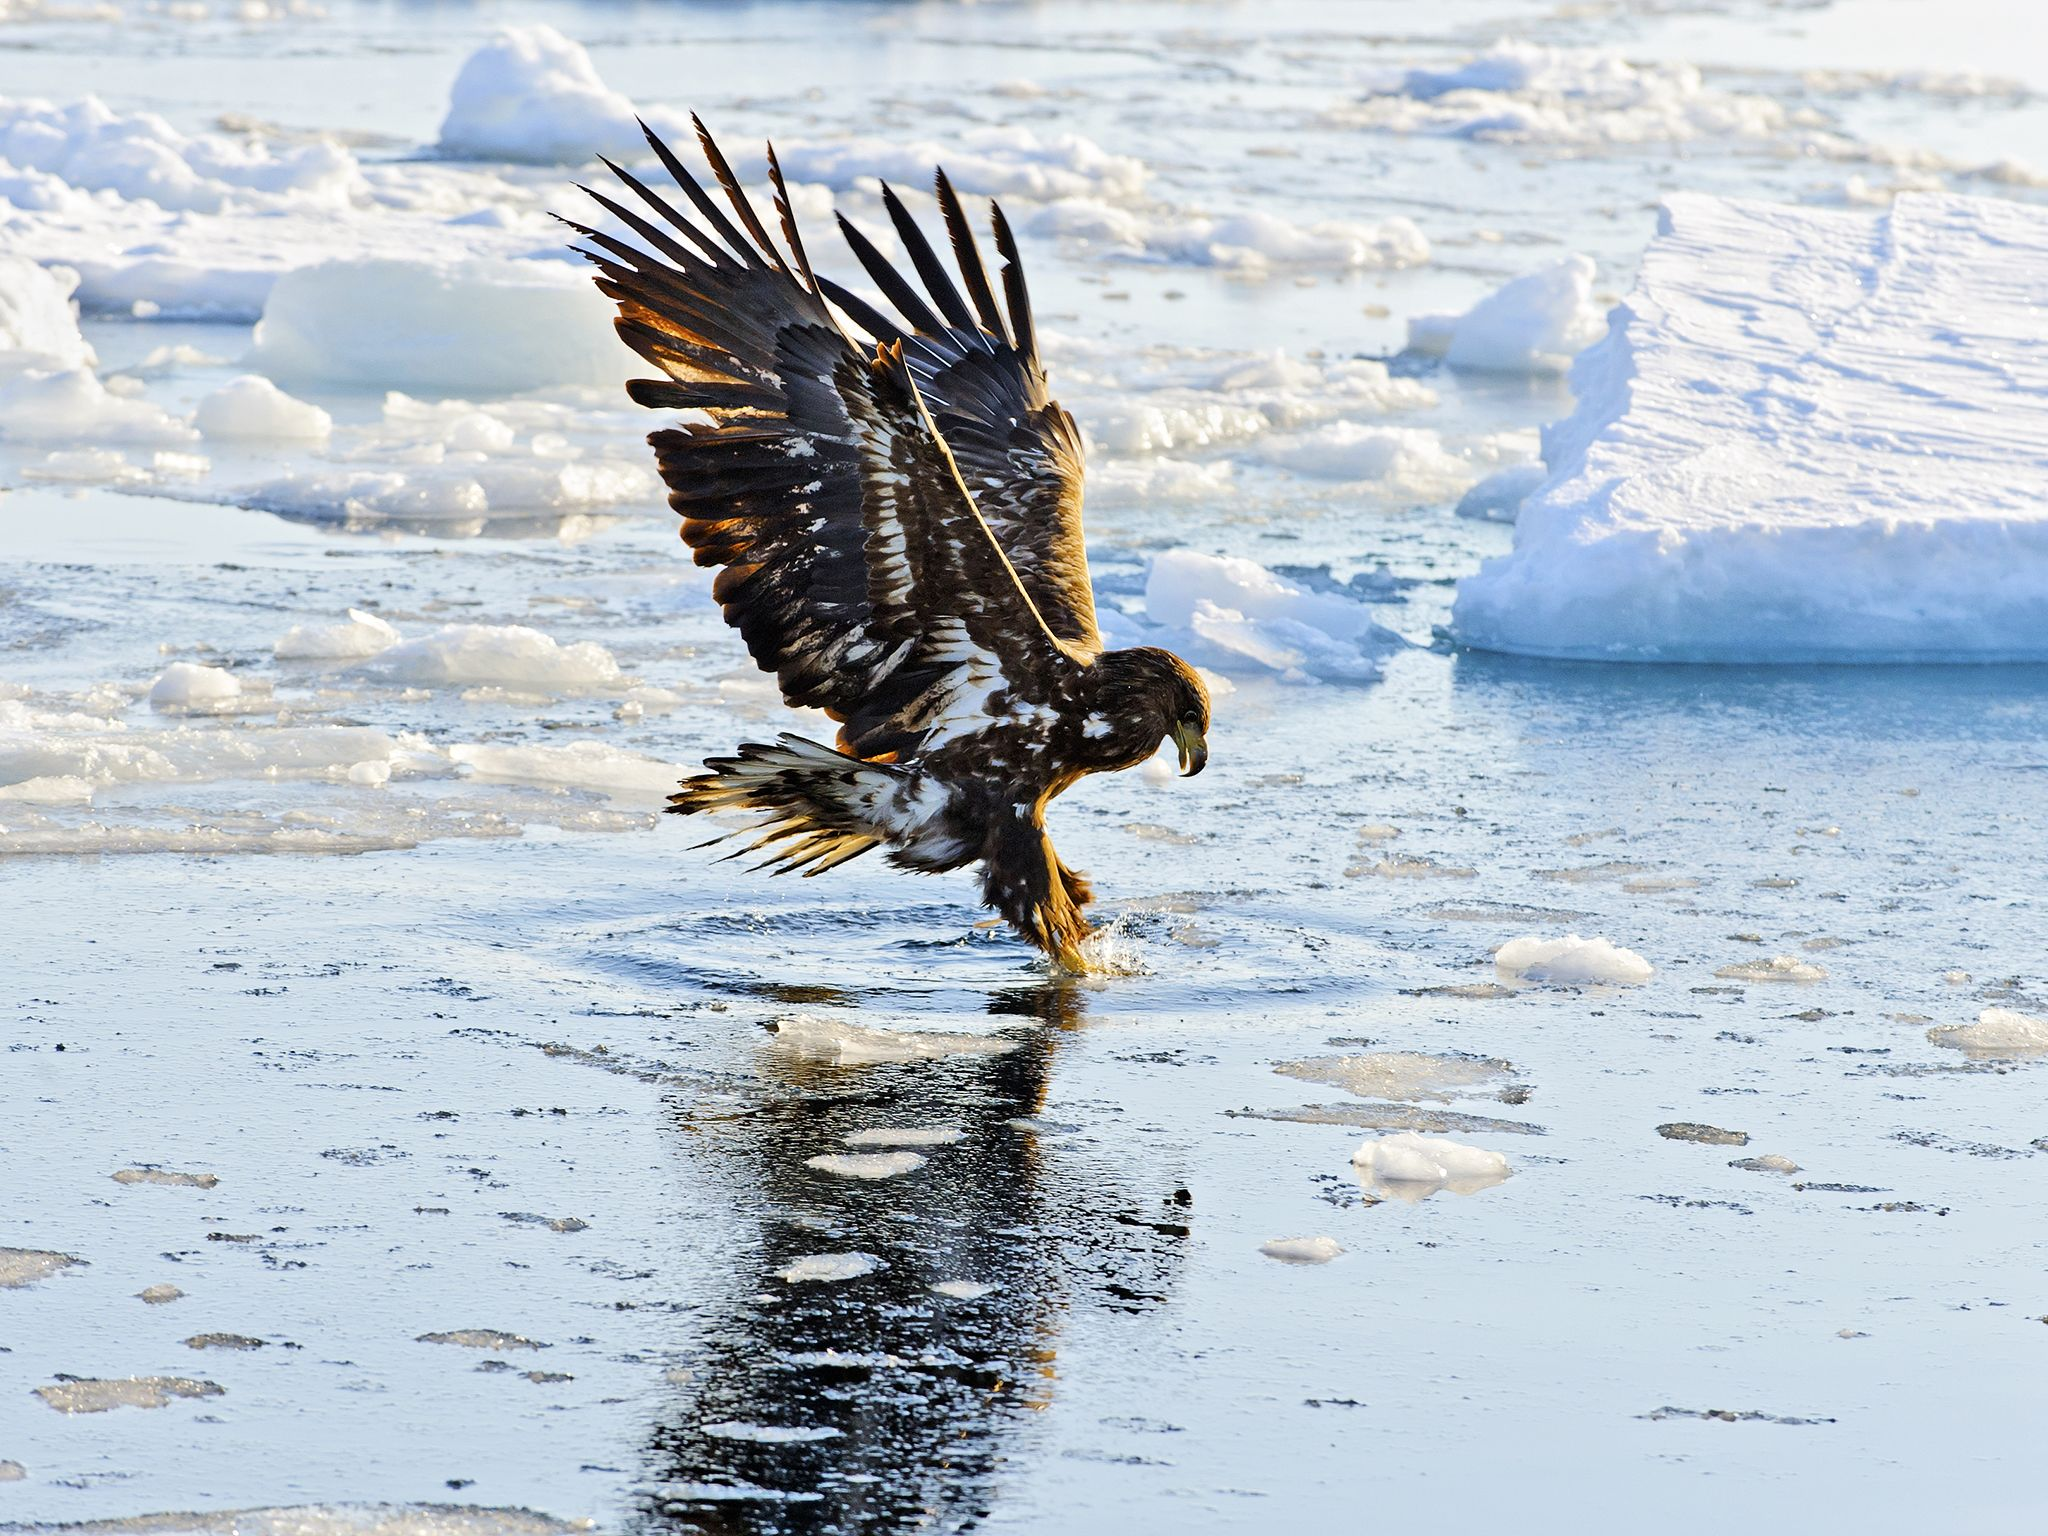 A White tailed eagle (Haliaeetus albicilla) fishing.  This image is from Winter Wonderland. [Photo of the day - 十二月 2015]